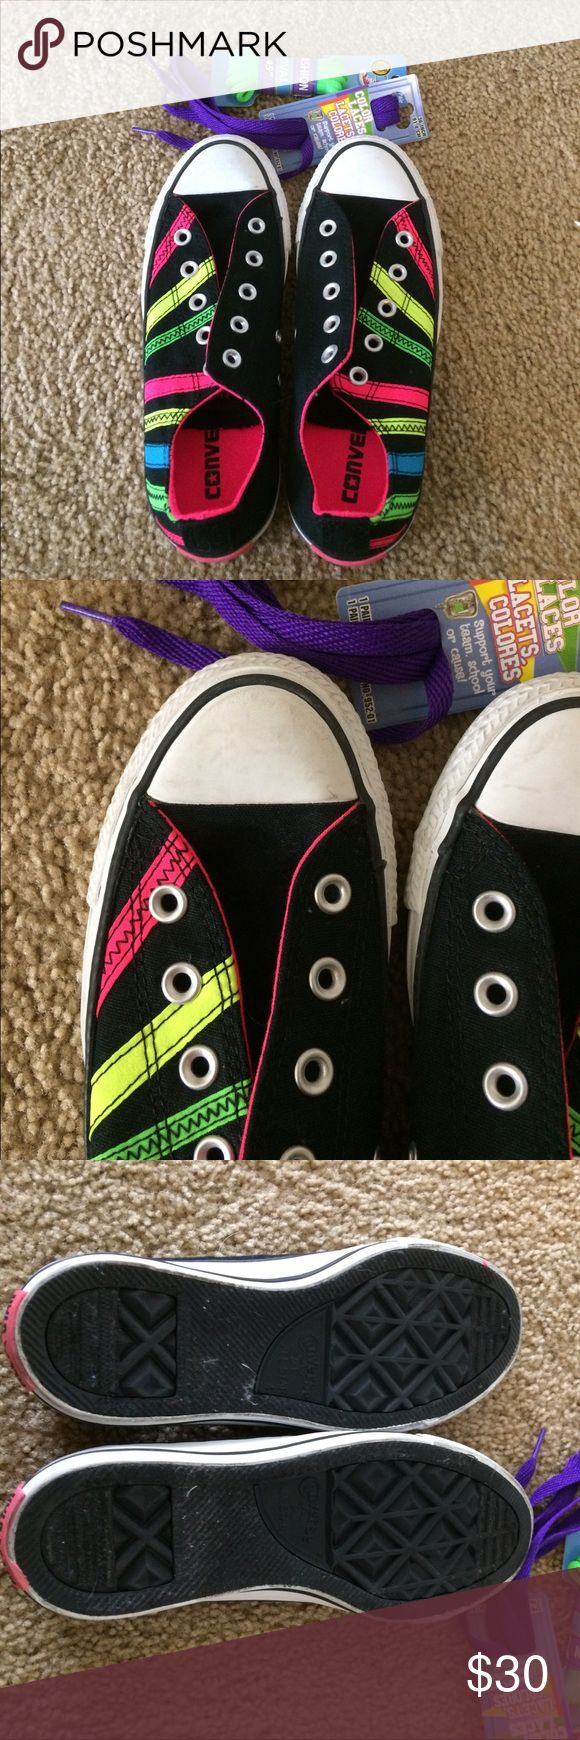 Neon converse Never worn. Slight markings from being a display pair. Will include 2 pairs of laces. Size 6. Converse Shoes Sneakers